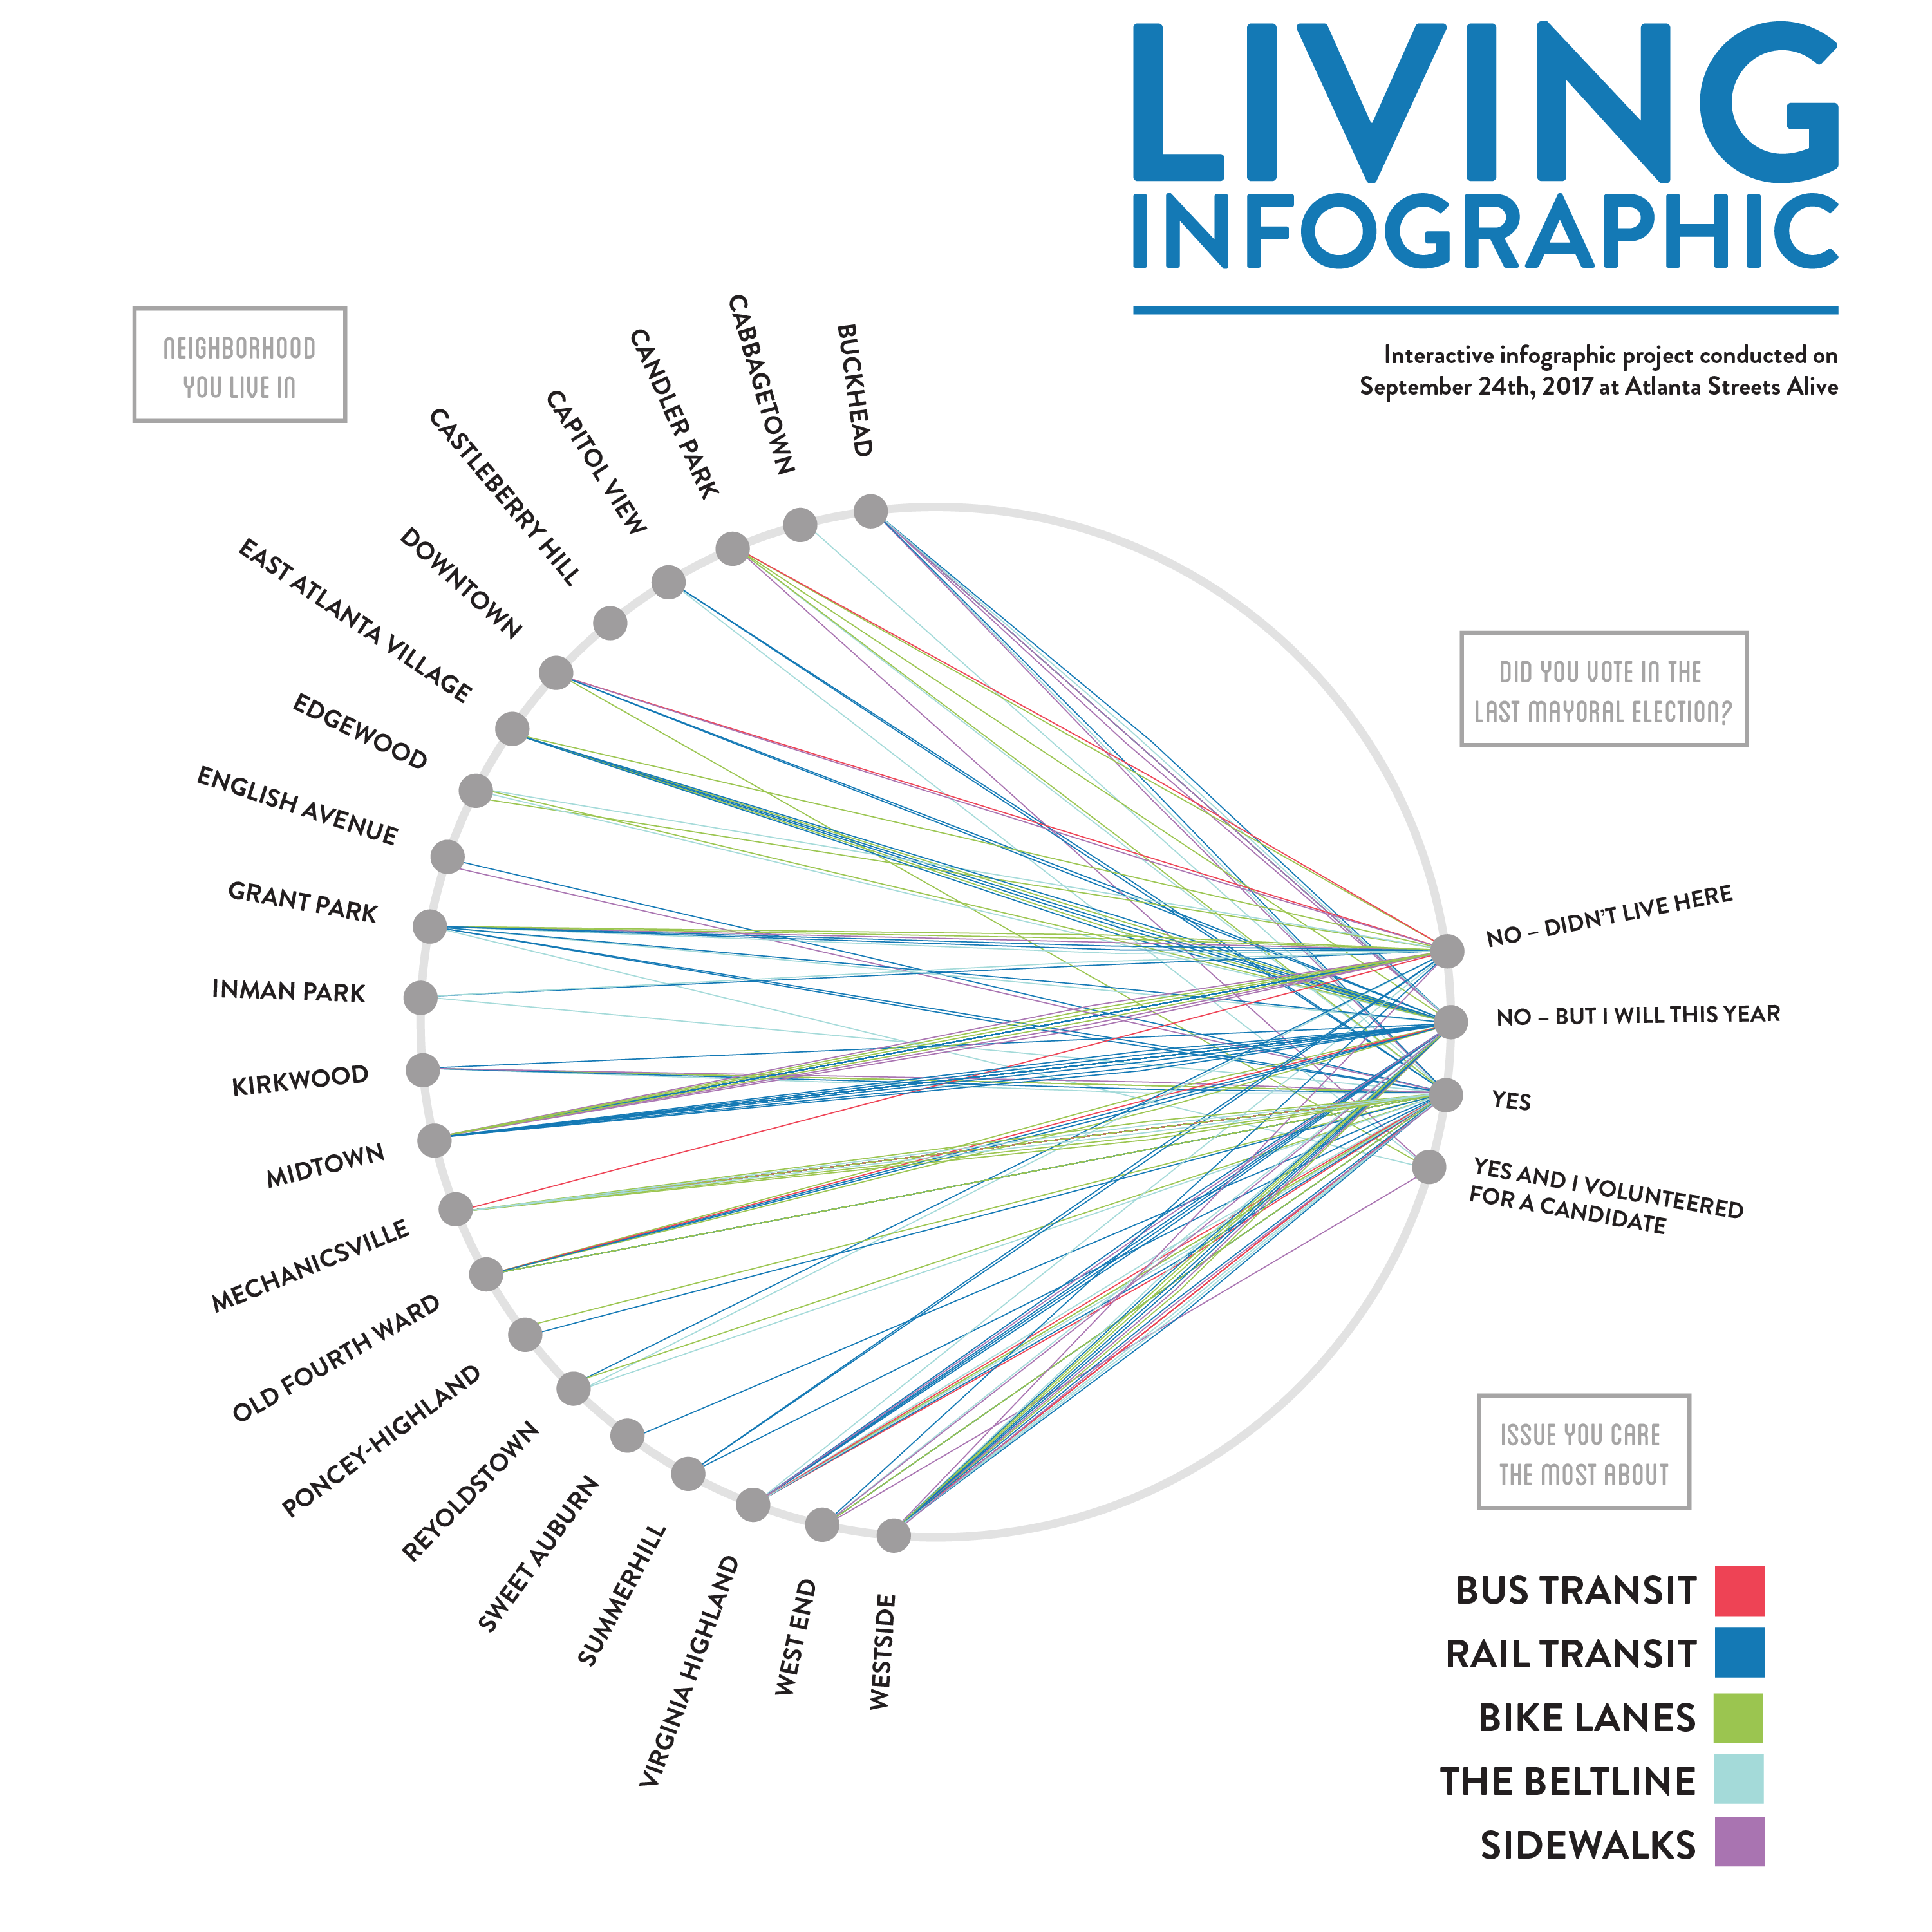 Living infographic streets alive 9 24 17 sarah lawrence what neighborhood do you live in hexwebz Choice Image